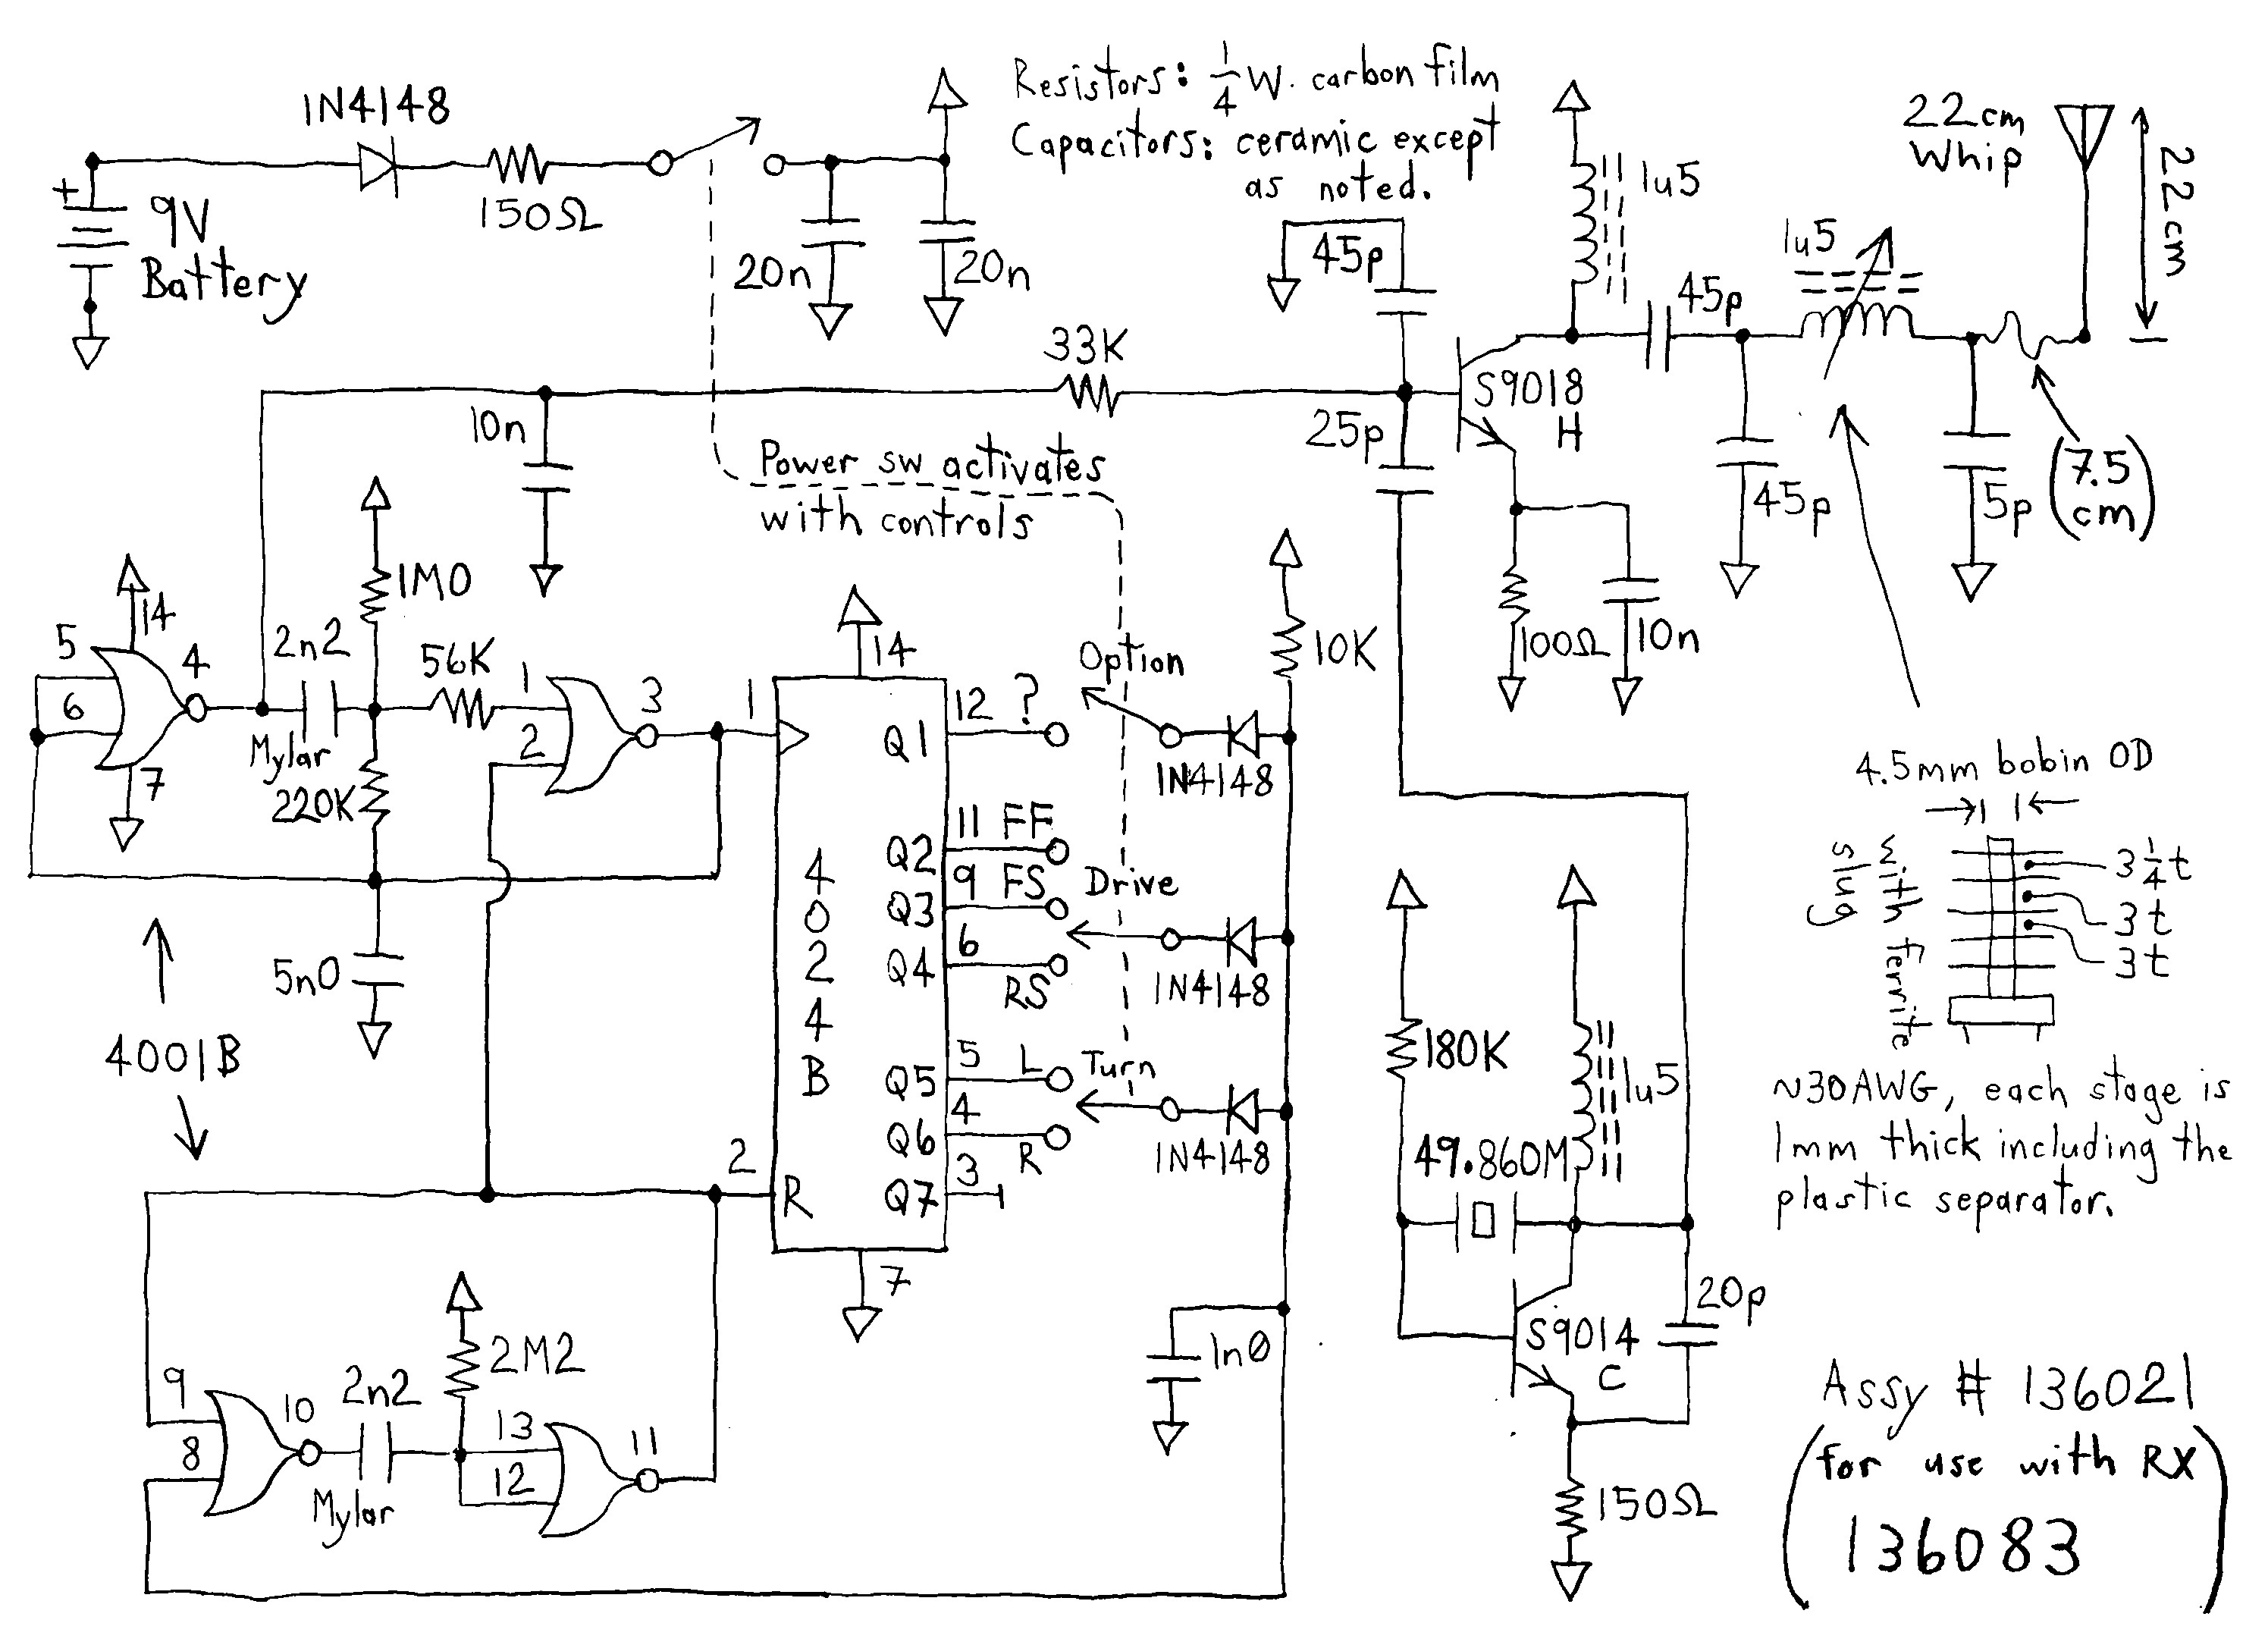 electric rc car diagram my wiring diagram rc car graphic four five channel rc cars tx and rx circuits using metal gate cmos